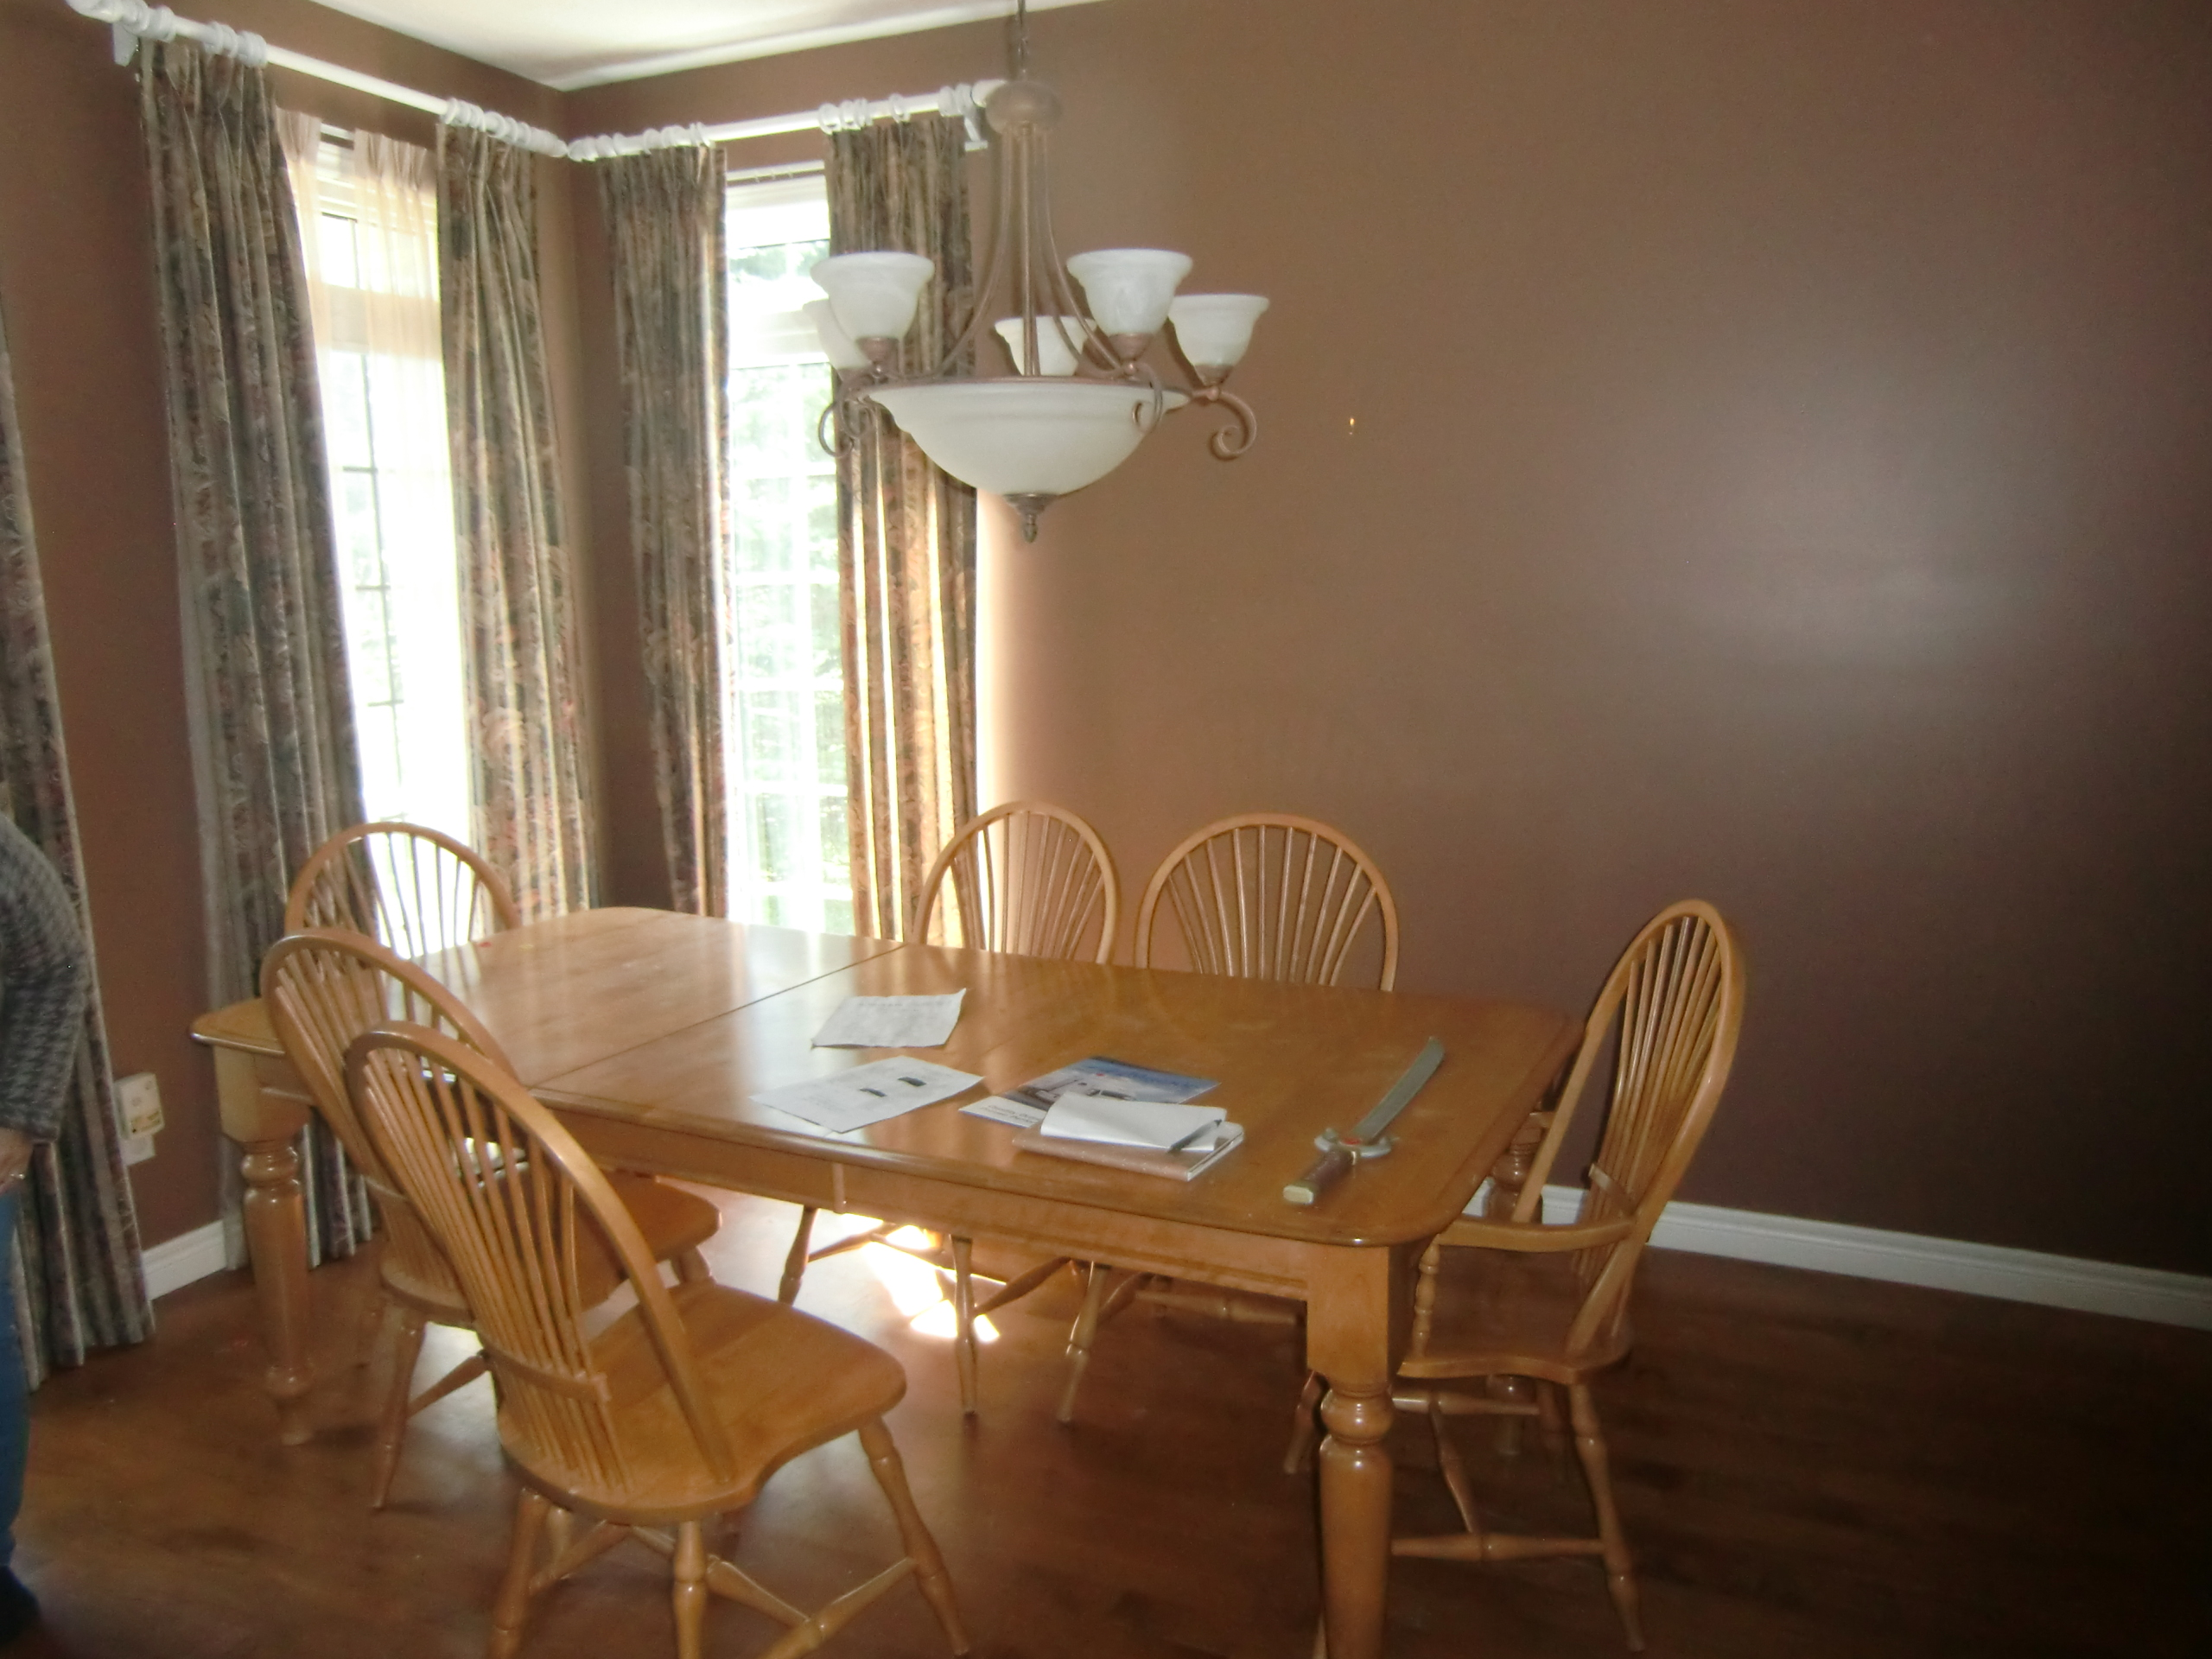 Luxury Dining Room Before Staging - Port Perry - Durham Region